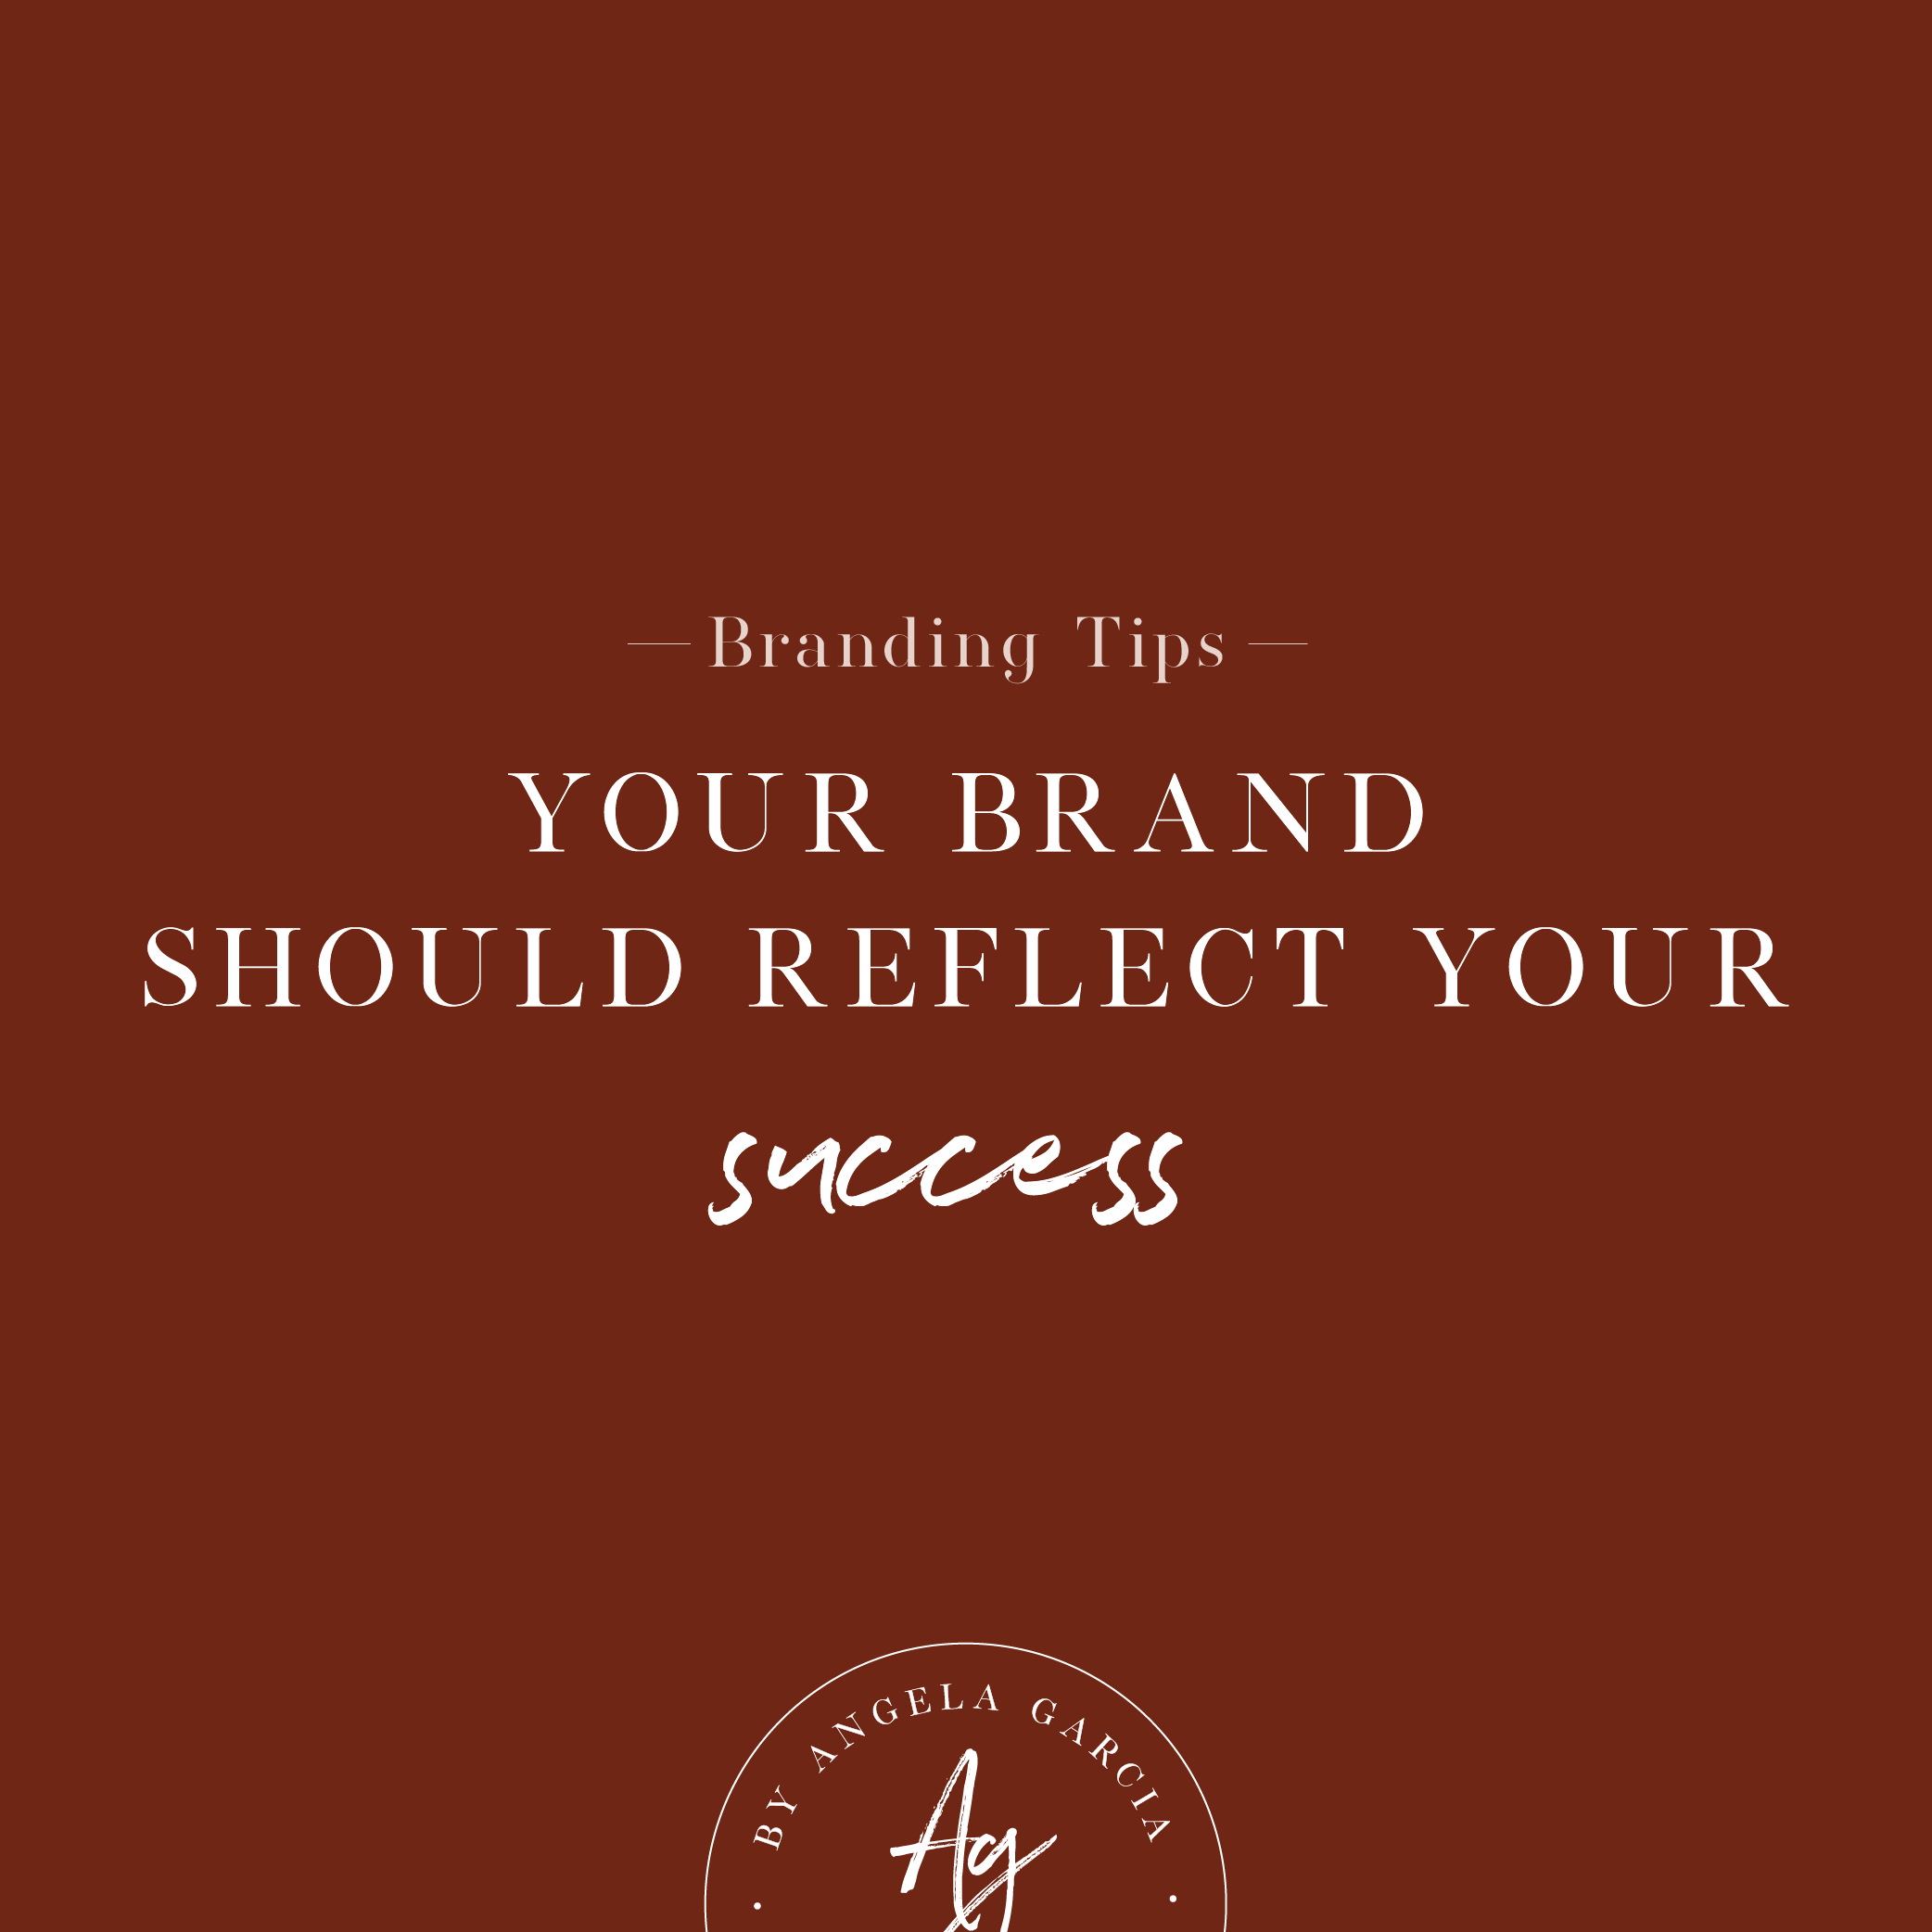 Your brand should reflect your success